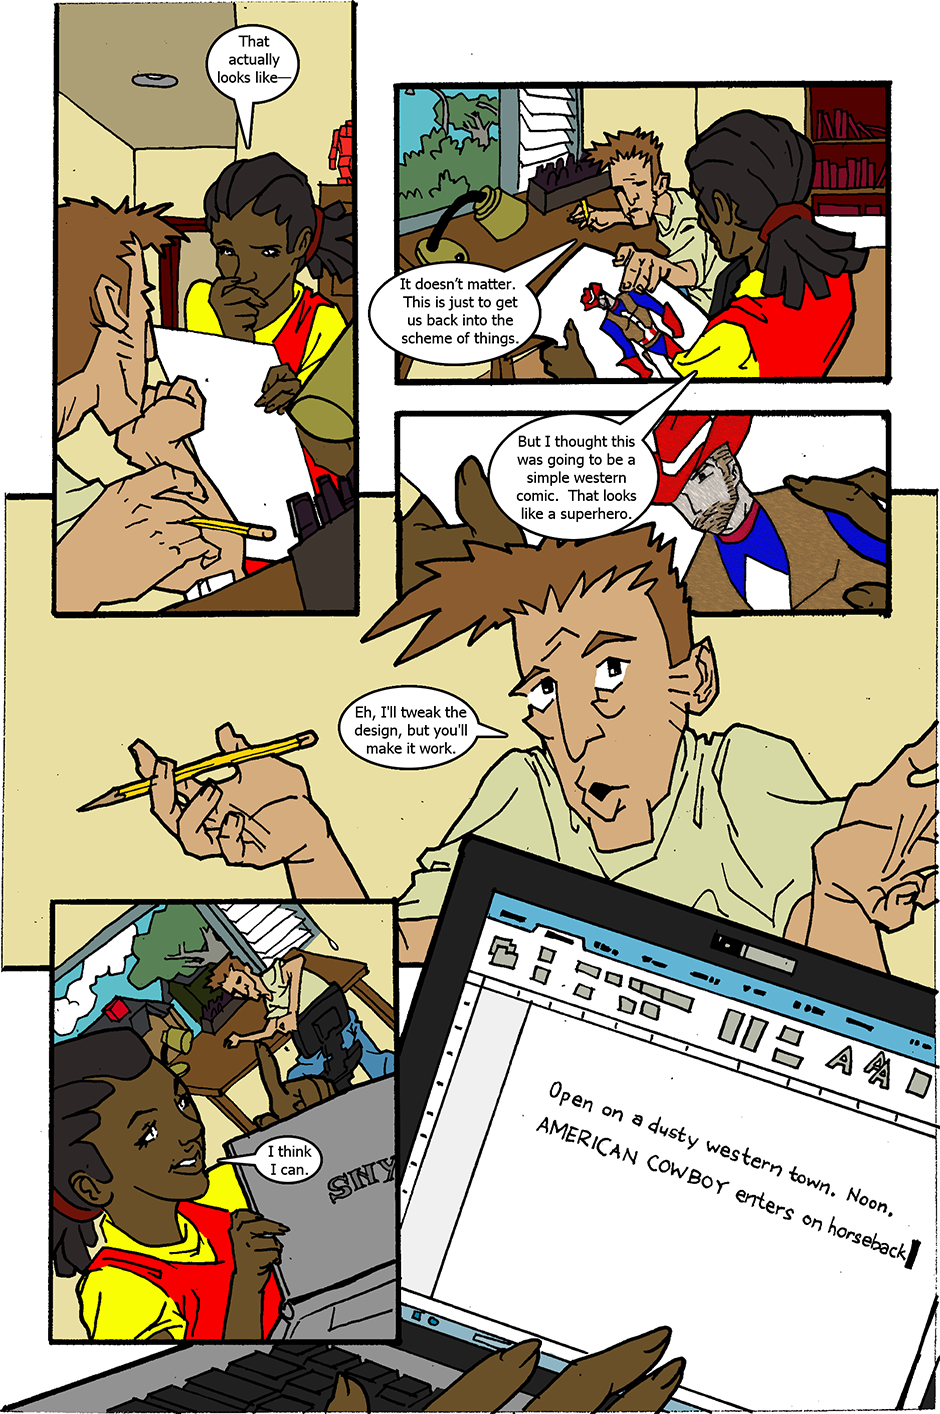 Issue 2: American Cowboy - Page 2